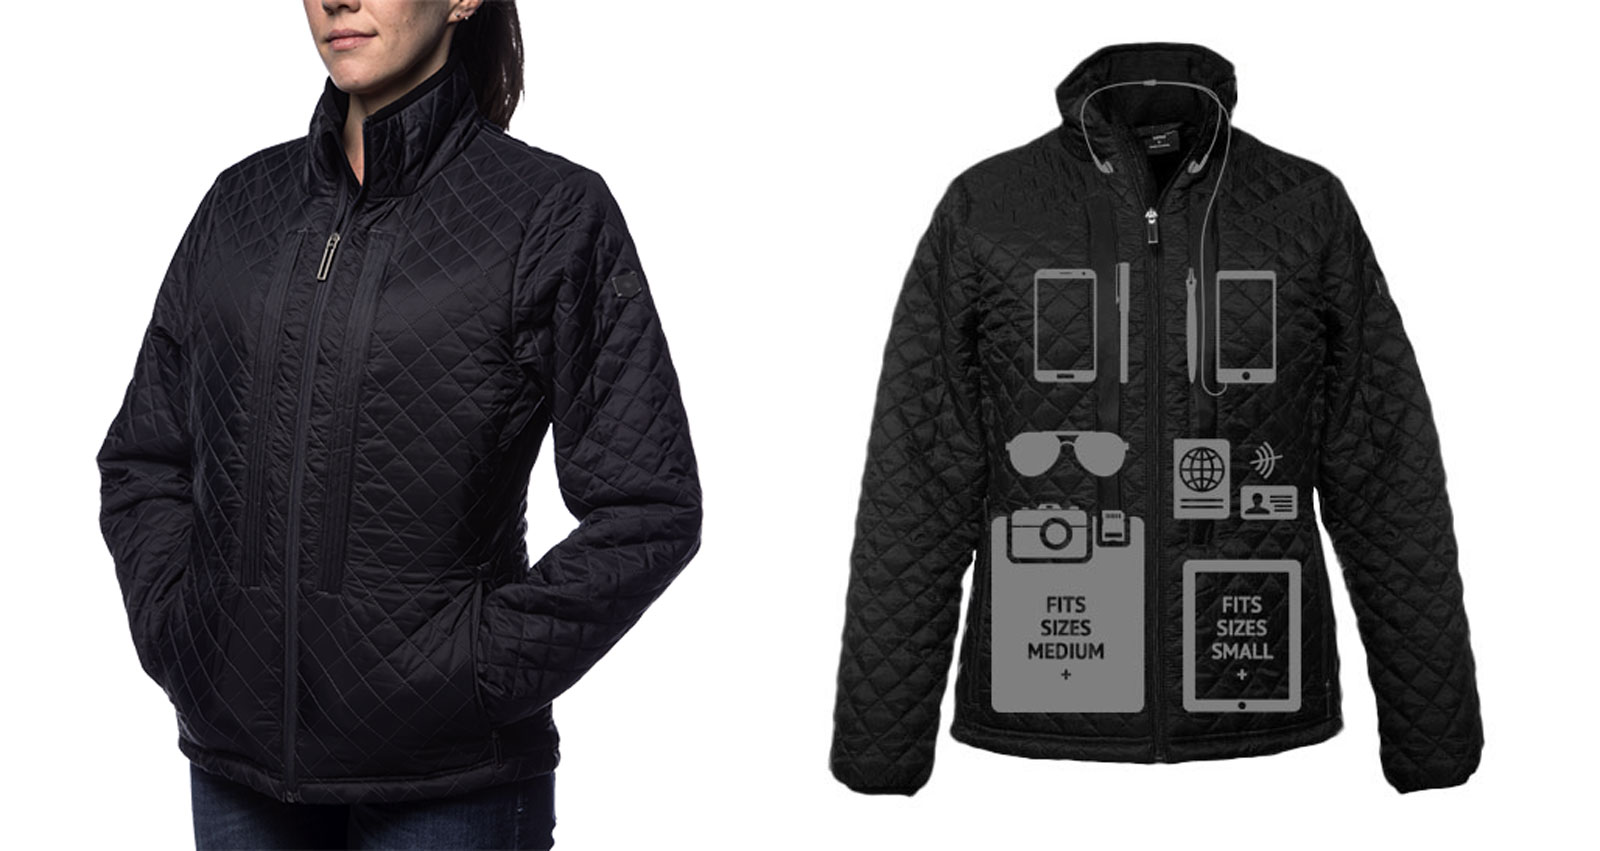 Carry every device you own in this jacket.